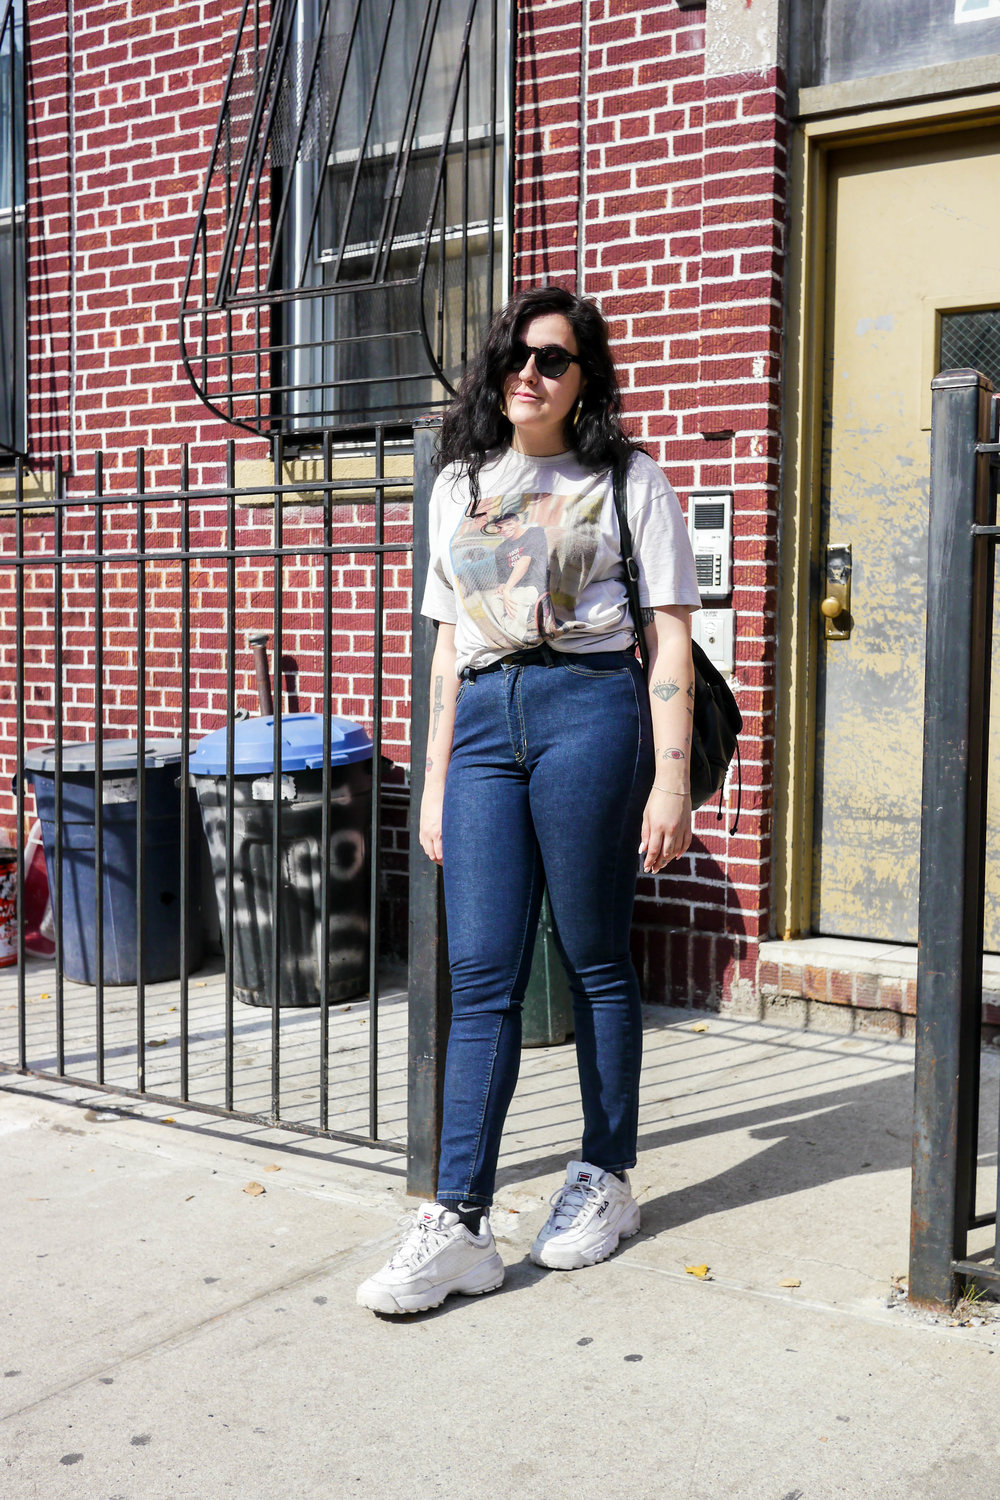 Top, Vintage ;    Jeans, American Apparel    ; Bag, Vintage ;    Shoes, FILA    ;    Sunglasses, Madewell